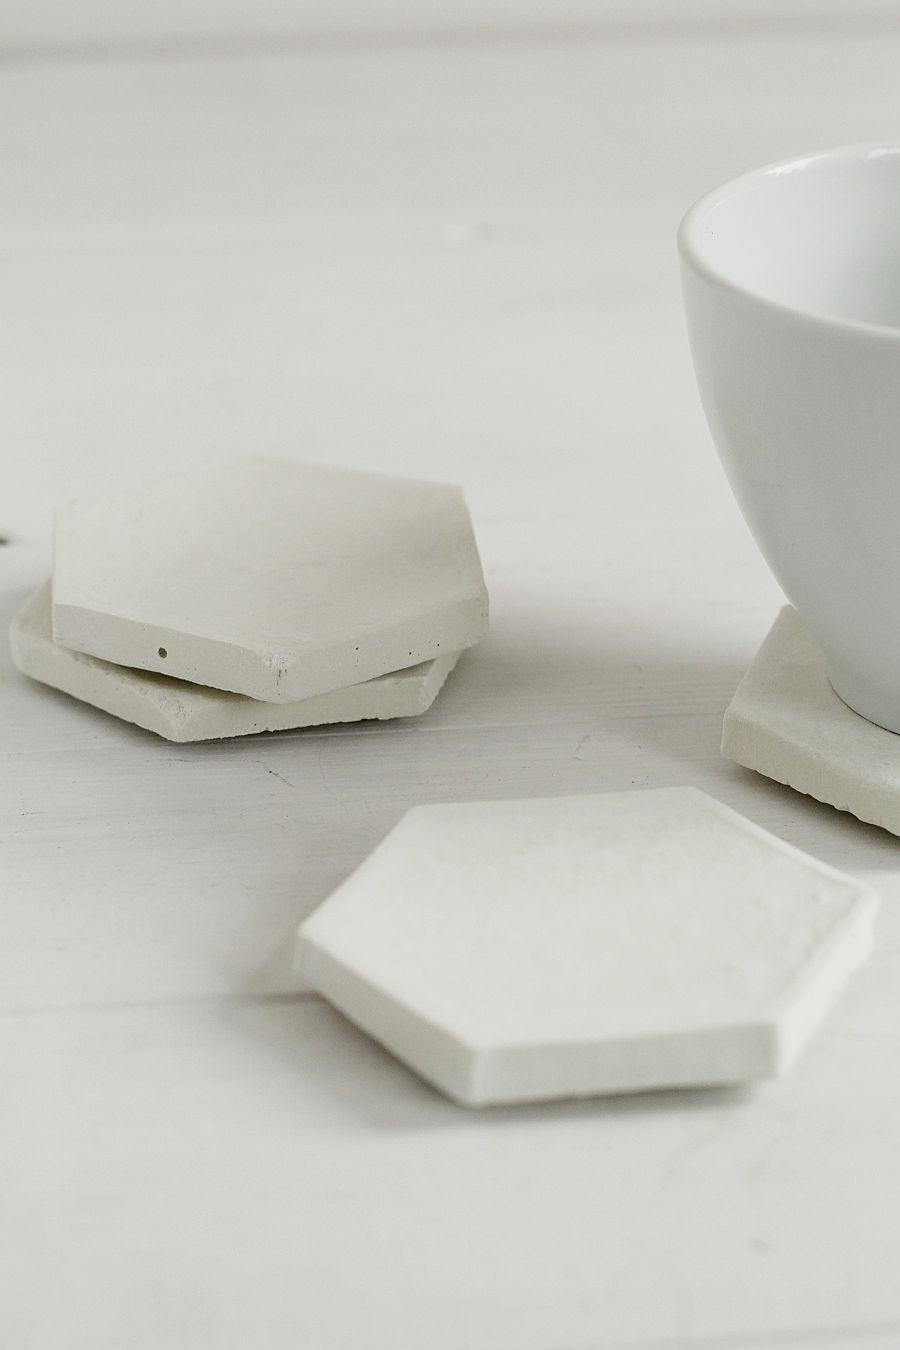 Minimal Concrete Hexagon Coasters